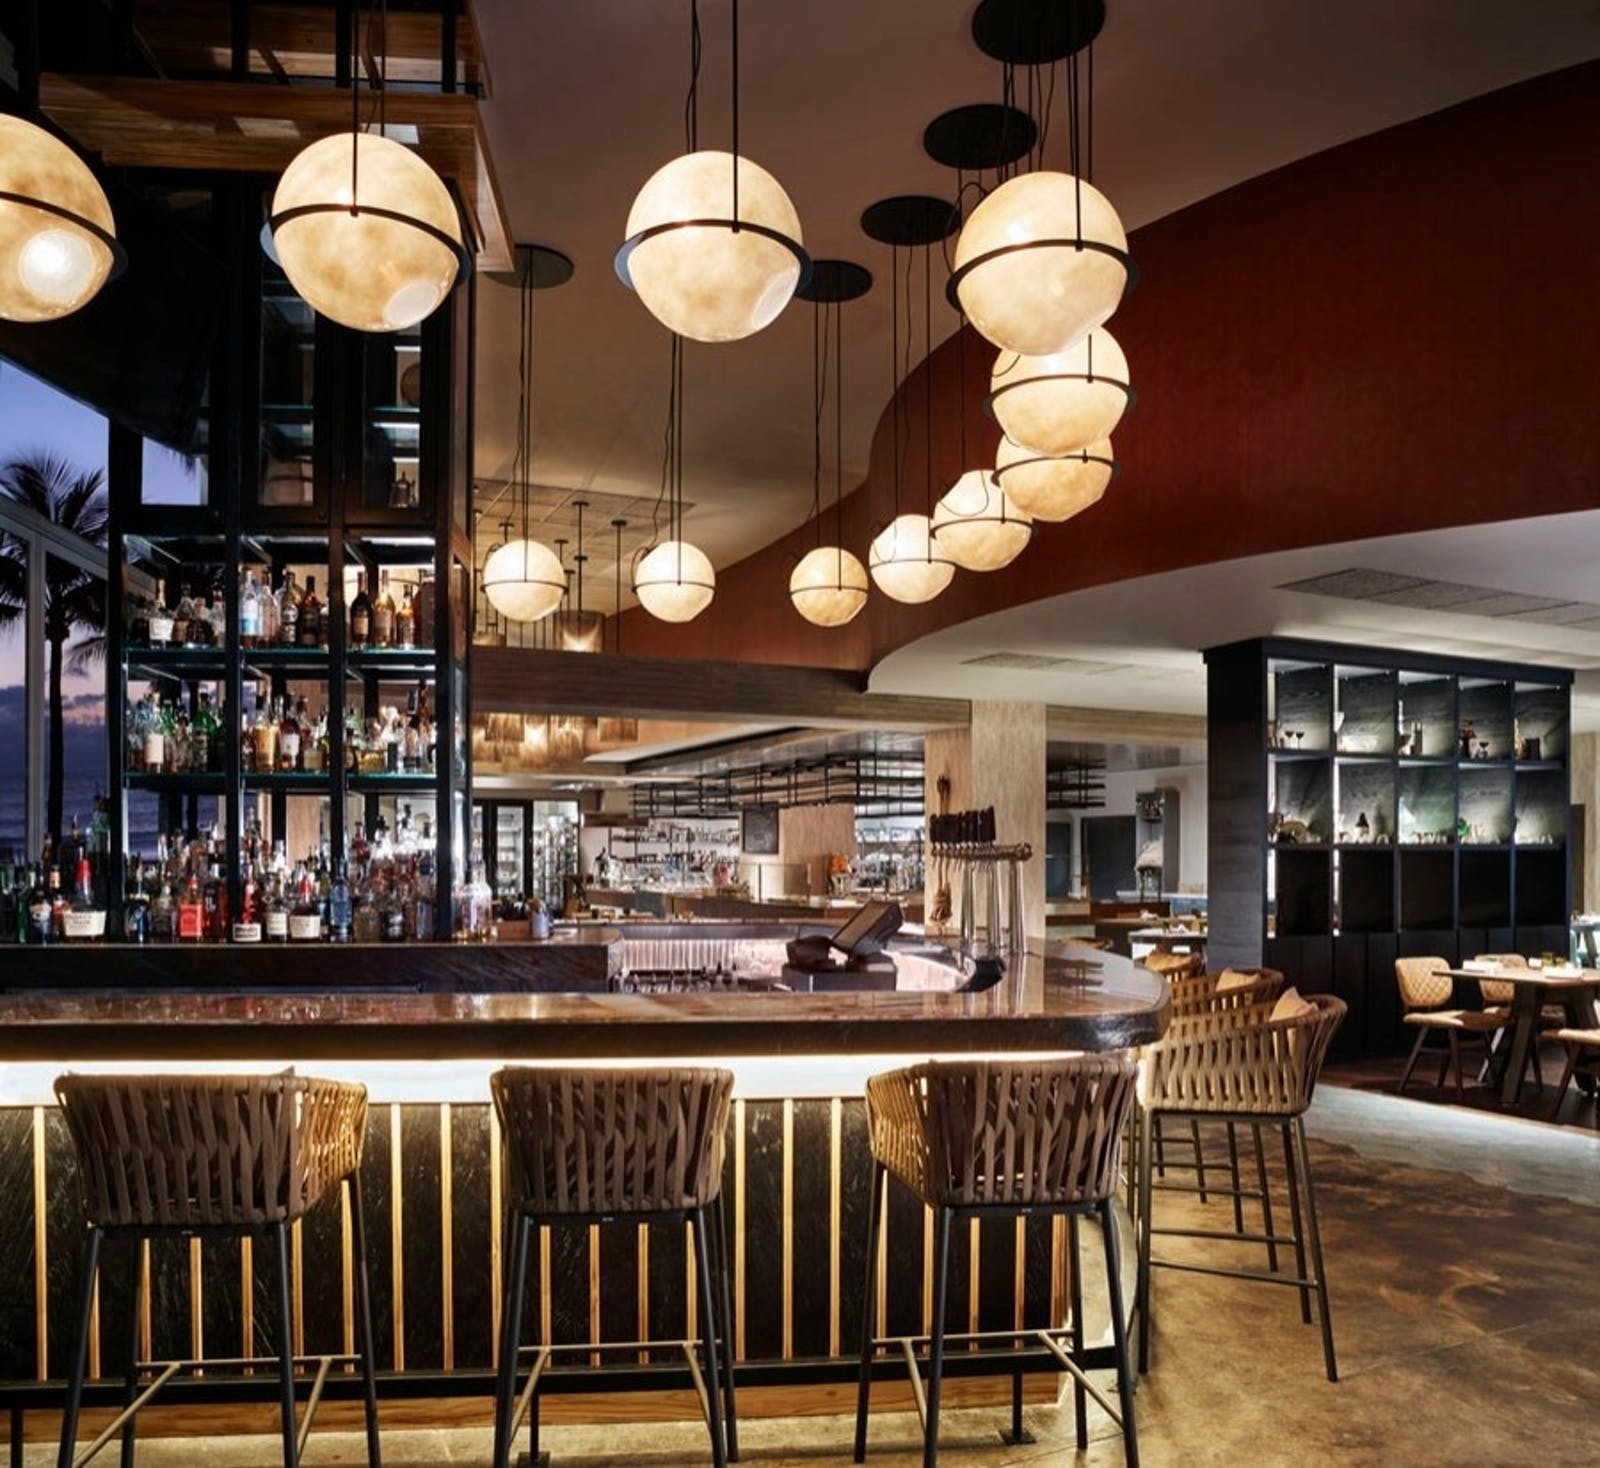 burlock coast bar at the ritz-carlton fort lauderdale